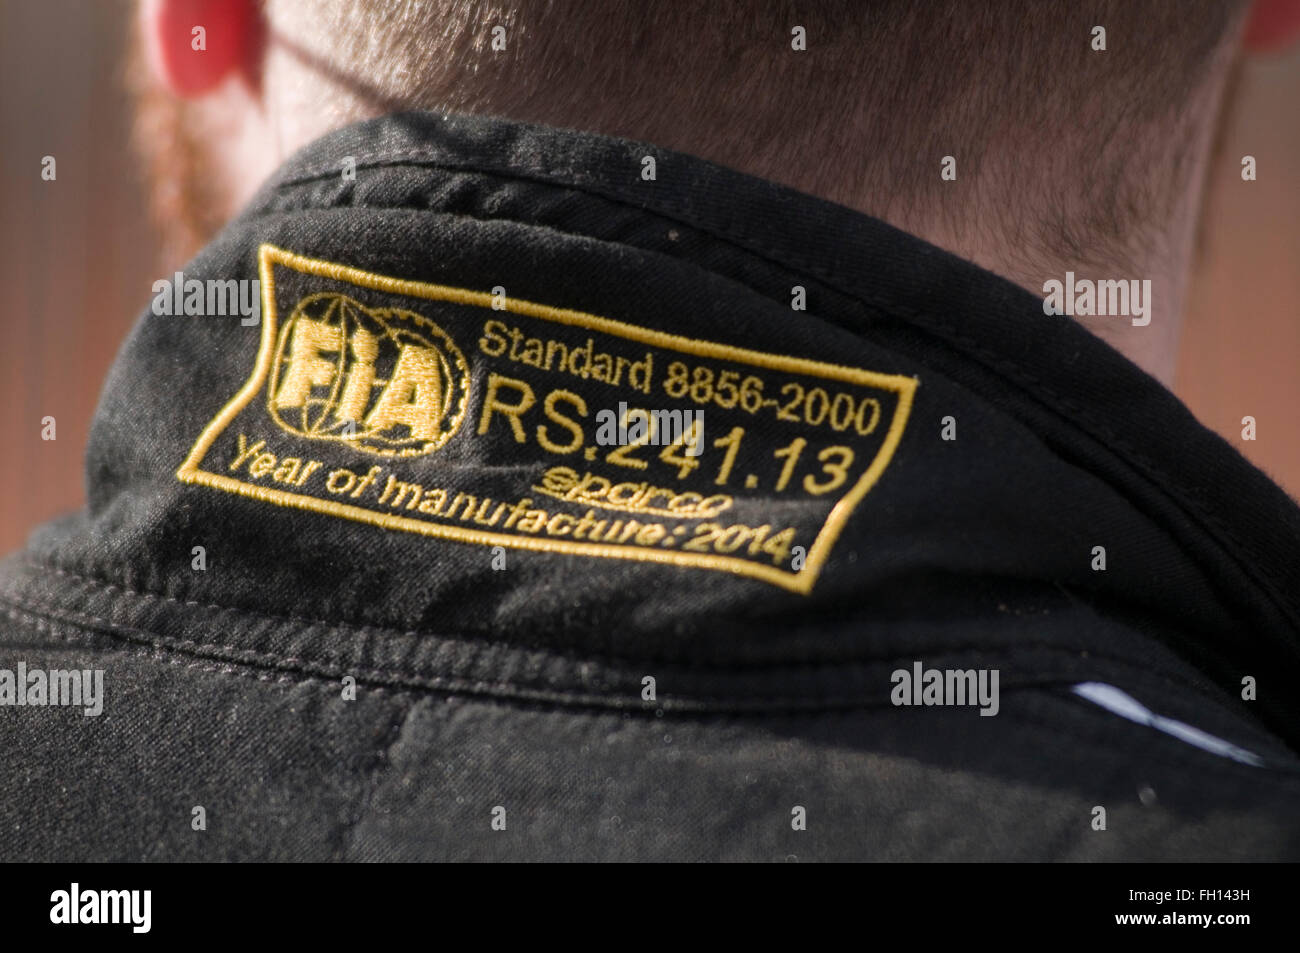 FIA approved fire suit being worn by racing driver safety standard standards fireproof proof overall overalls racing - Stock Image